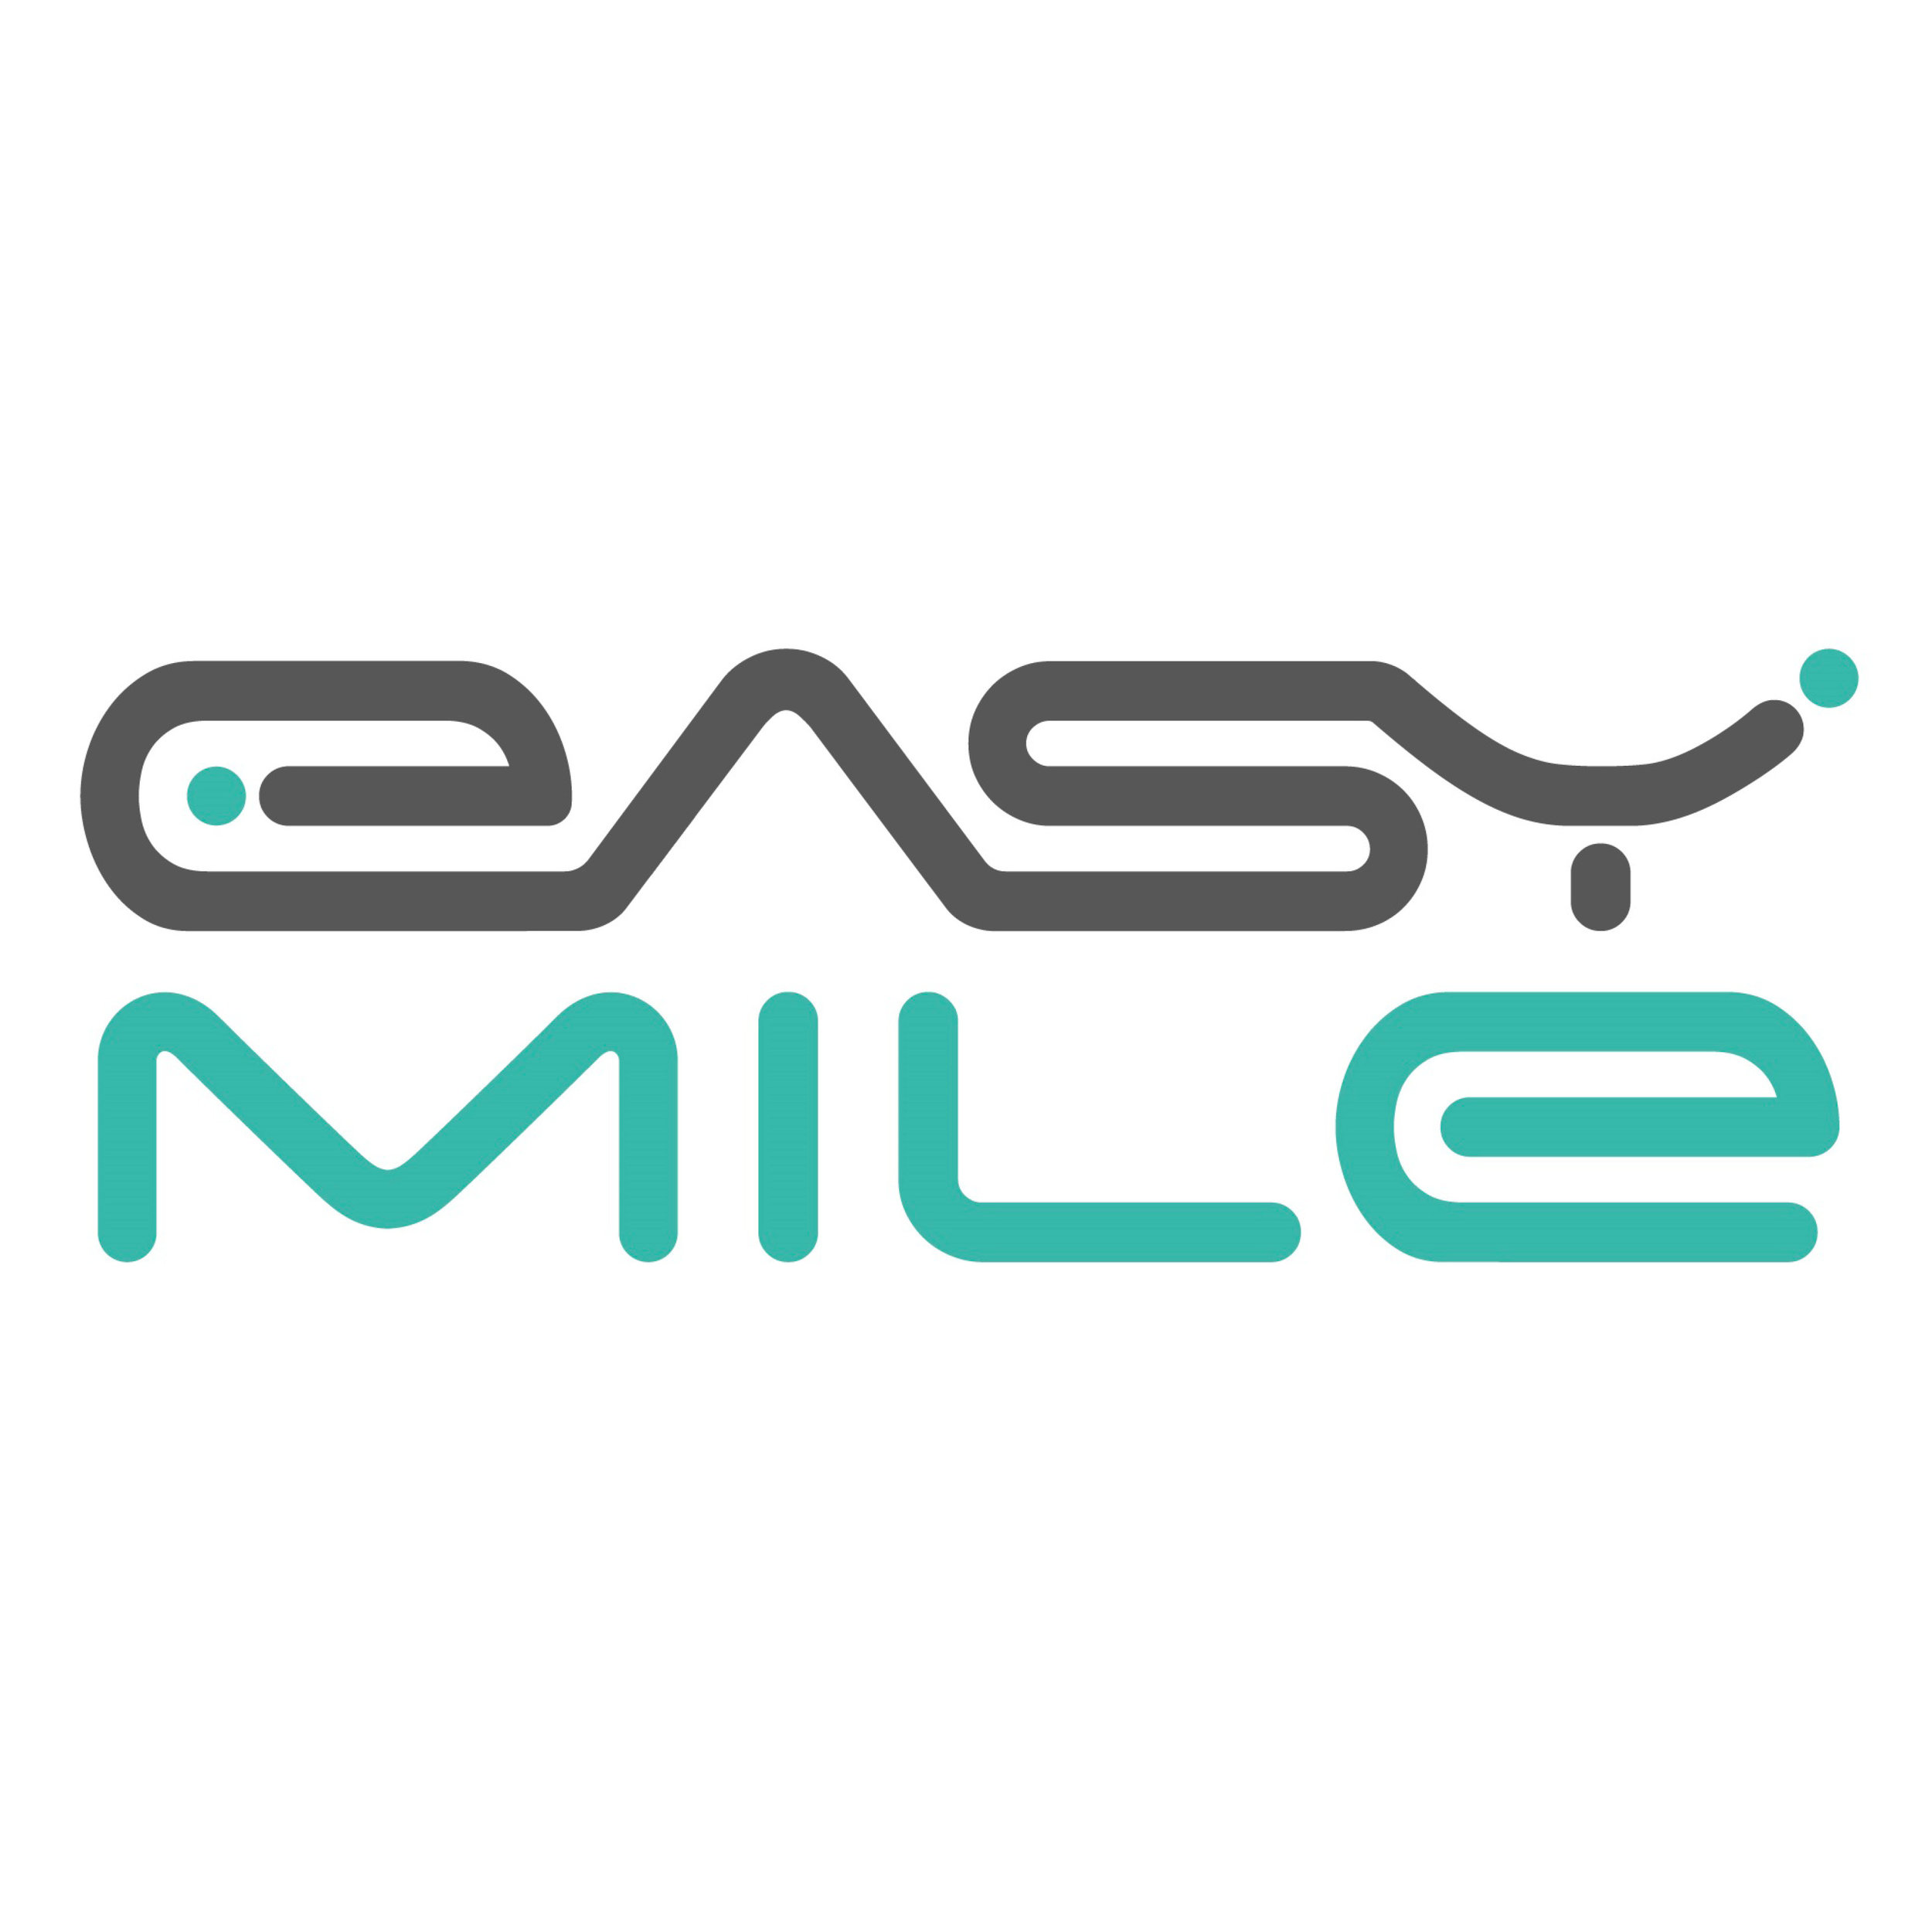 Easy mile logo.jpg